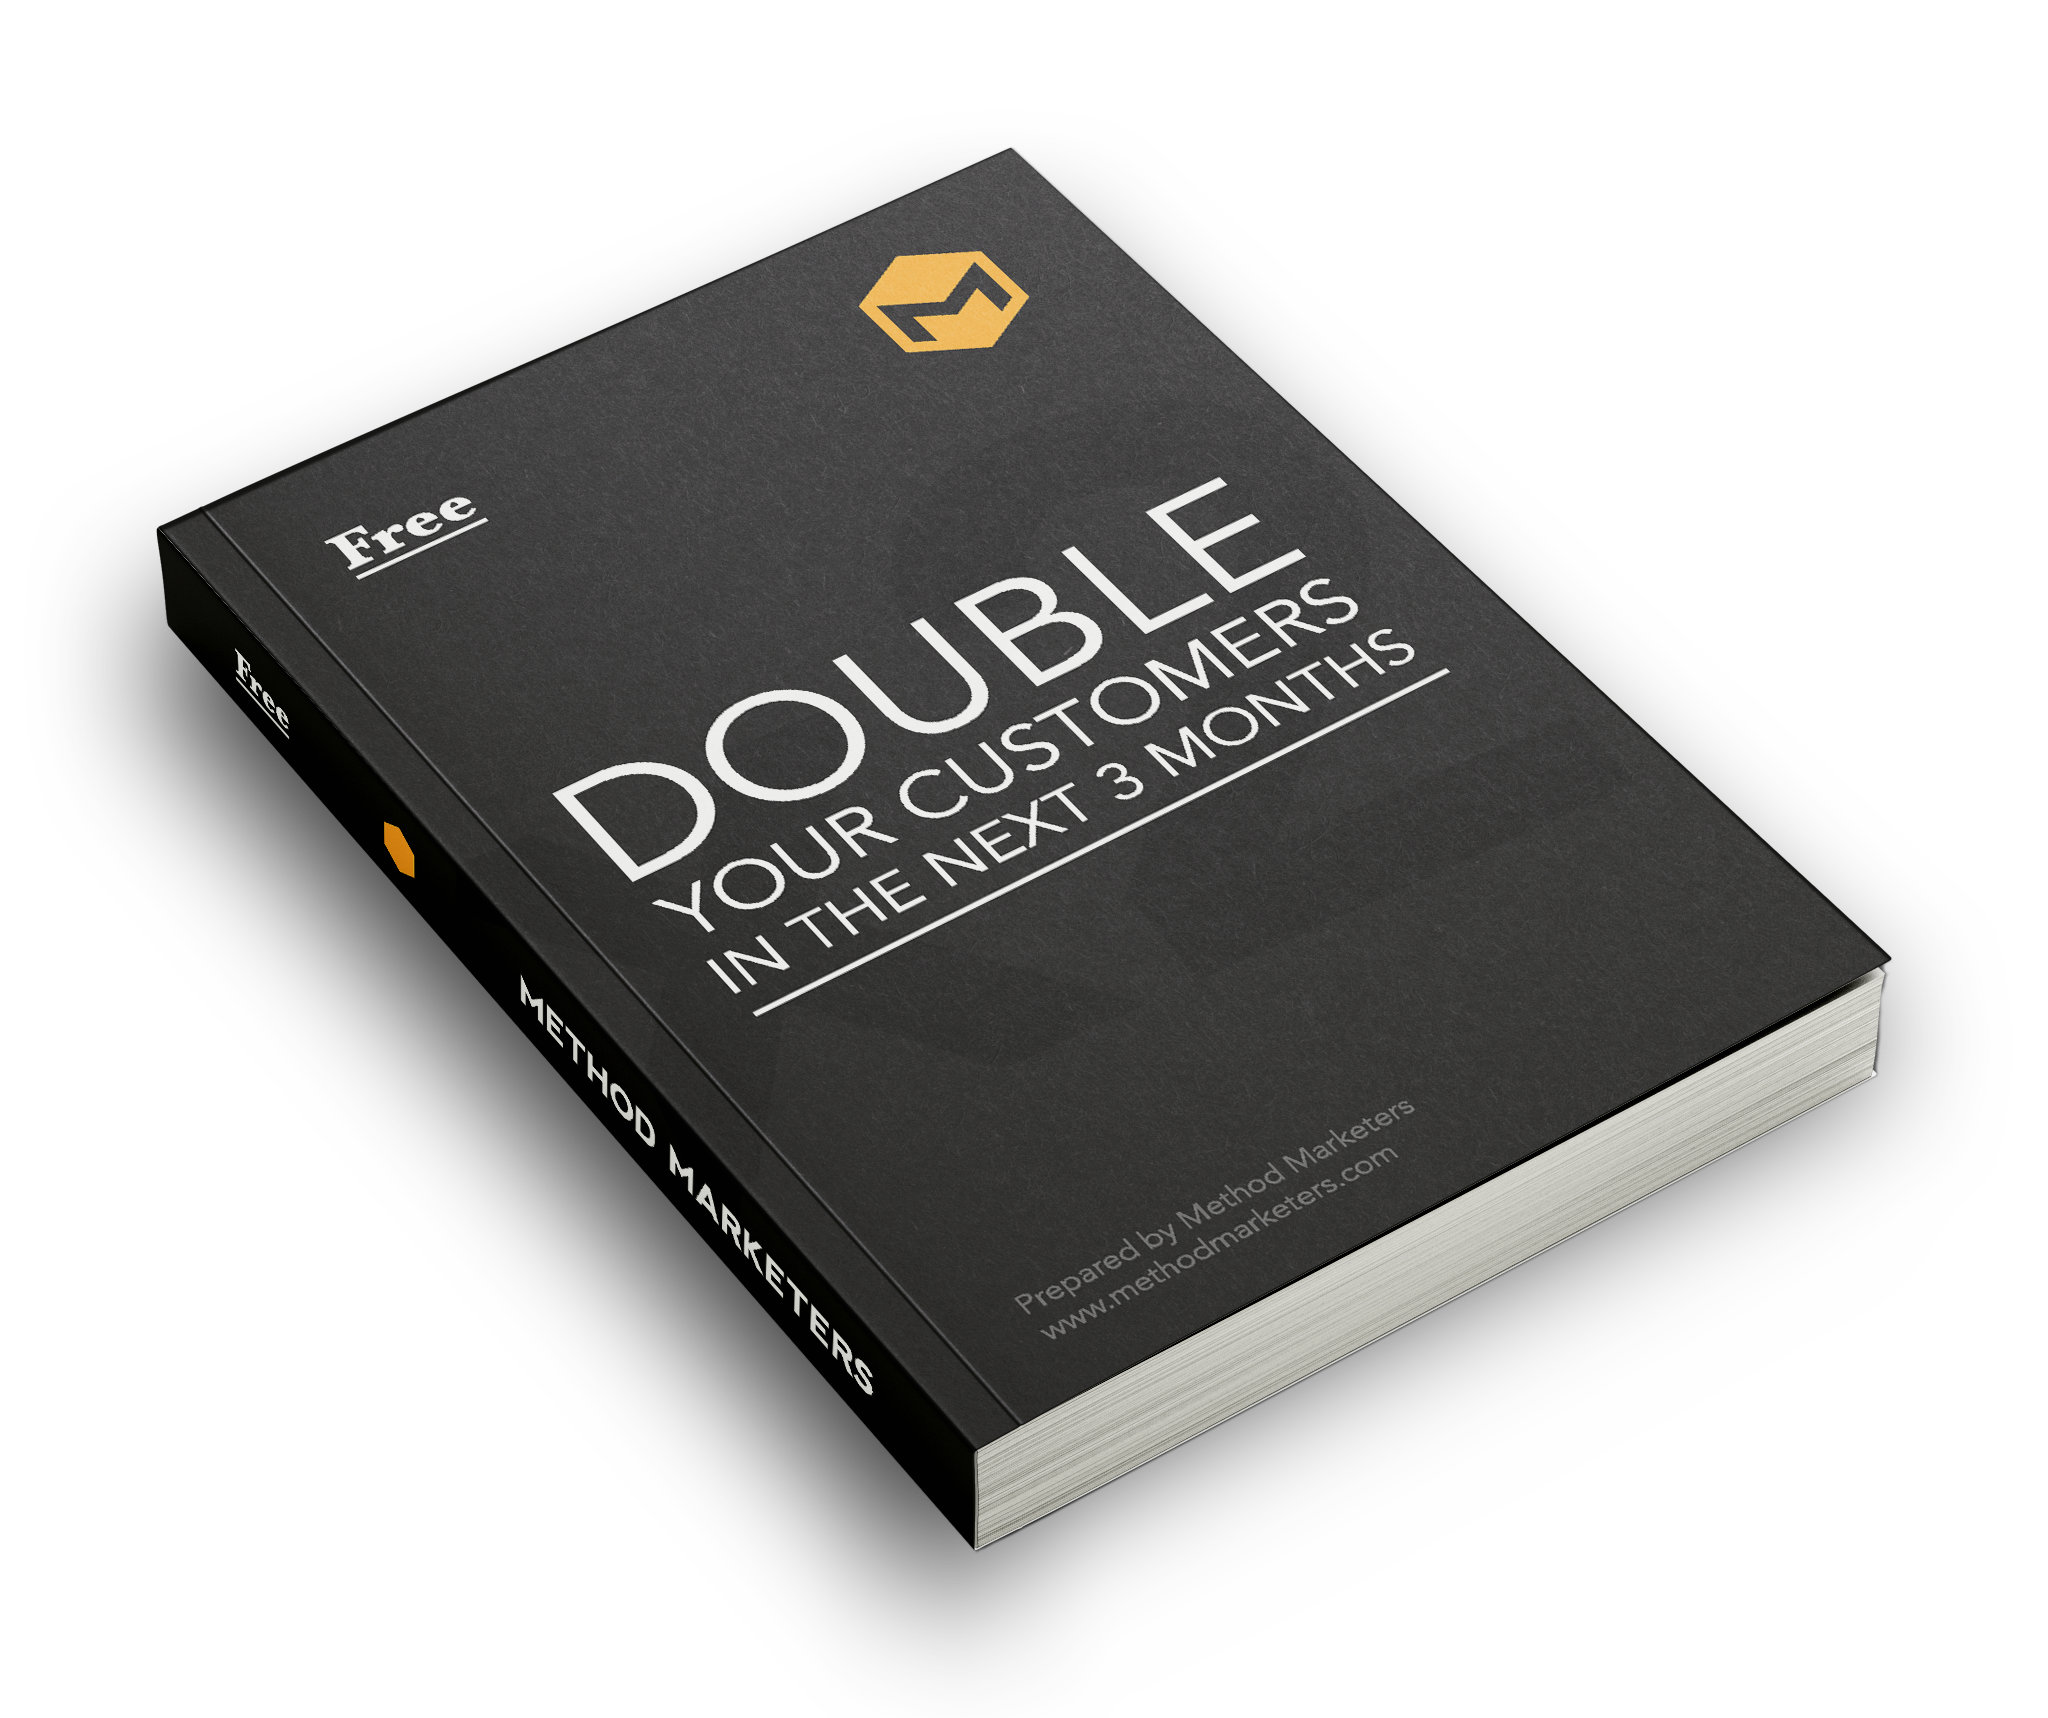 Double your customers in the next 3 months PDF book.